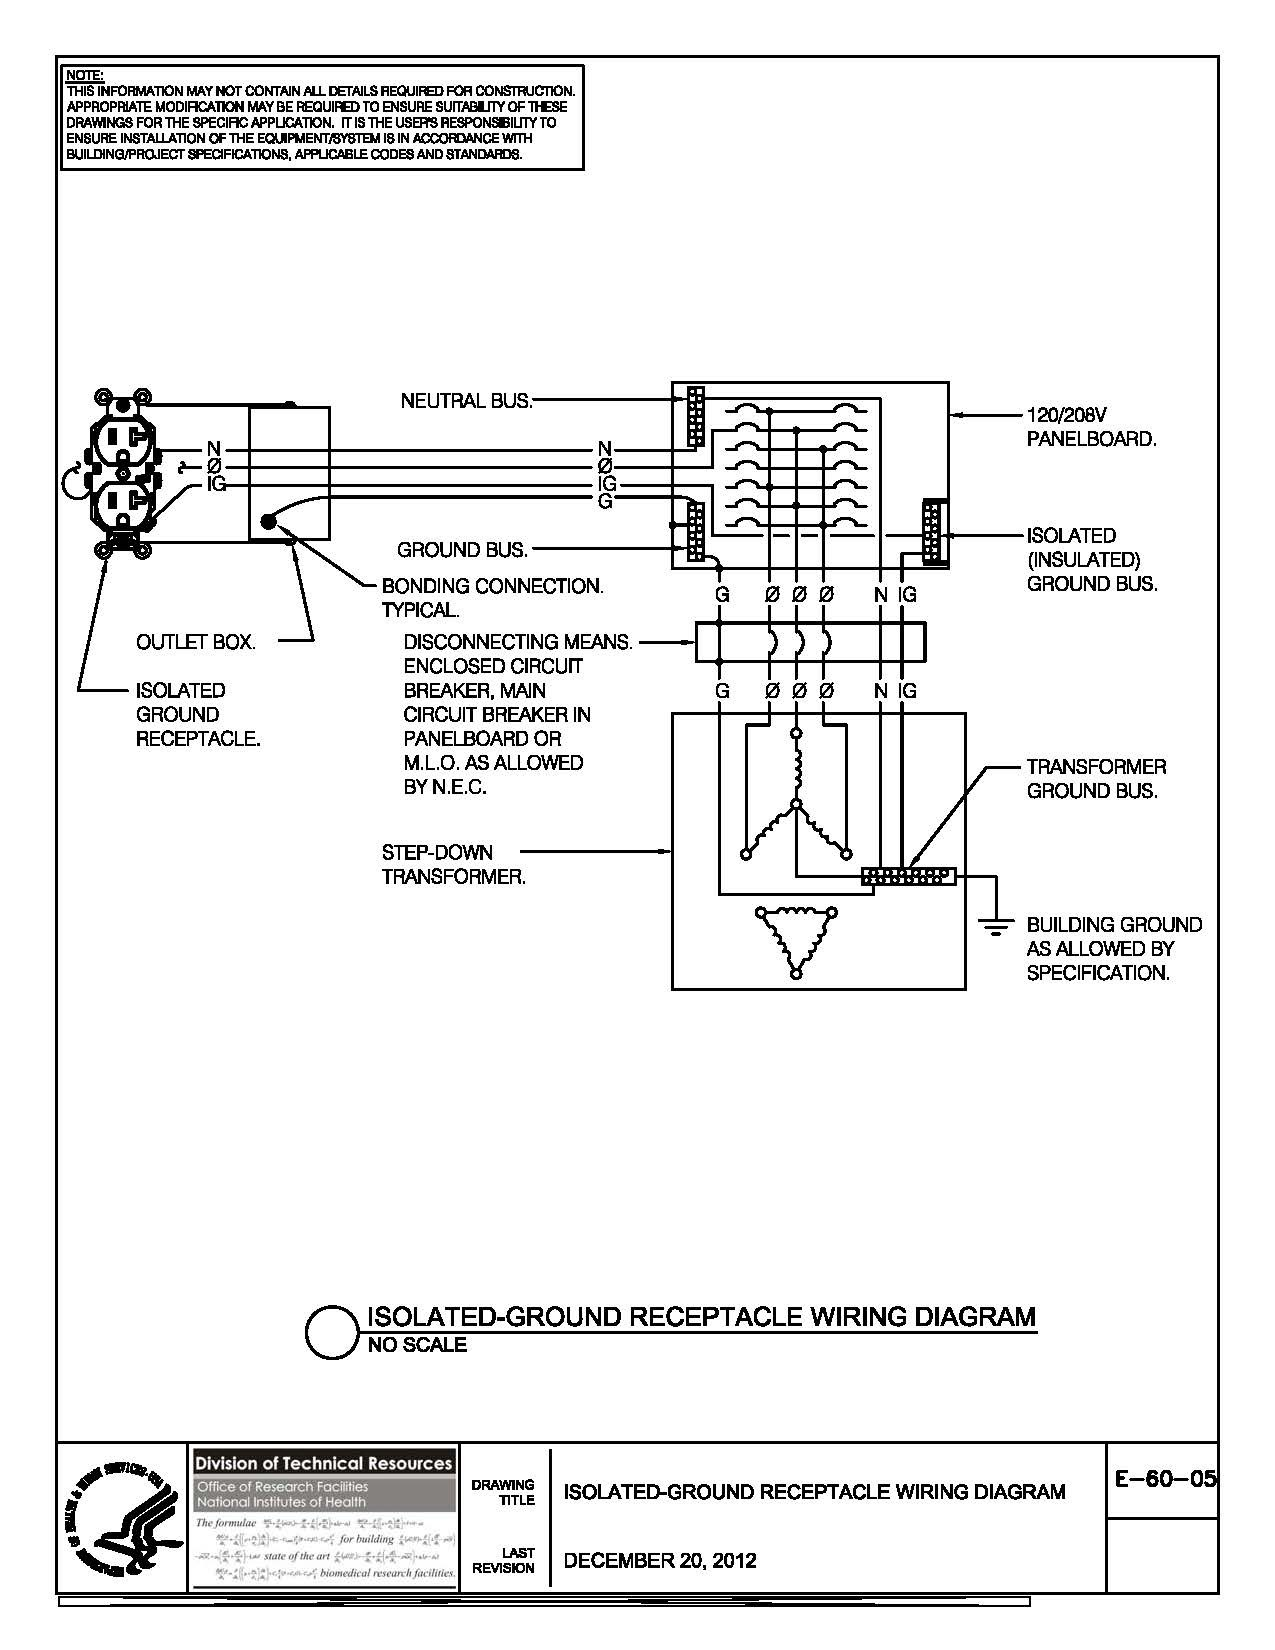 Car Electrical Wiring Diagram Auto Hoist Wiring Diagrams Cad 3 ton Hoist Wiring Diagram Wiring Of Car Electrical Wiring Diagram Auto Hoist Wiring Diagrams Cad 3 ton Hoist Wiring Diagram Wiring